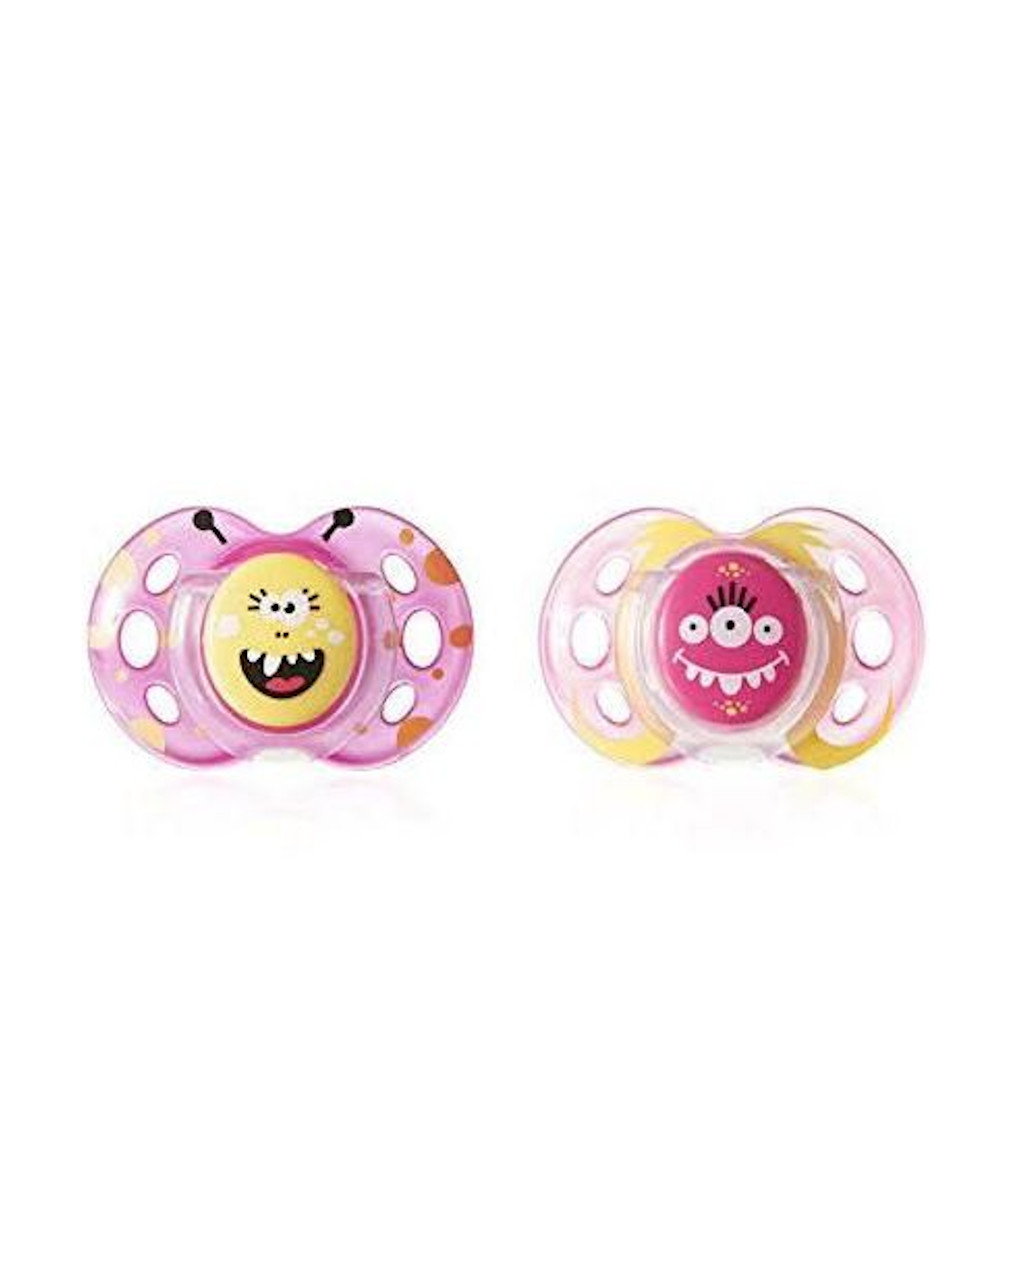 Succhietto fun girl 18-36m 2 pezzi tommee tippee - Tommee Tippee